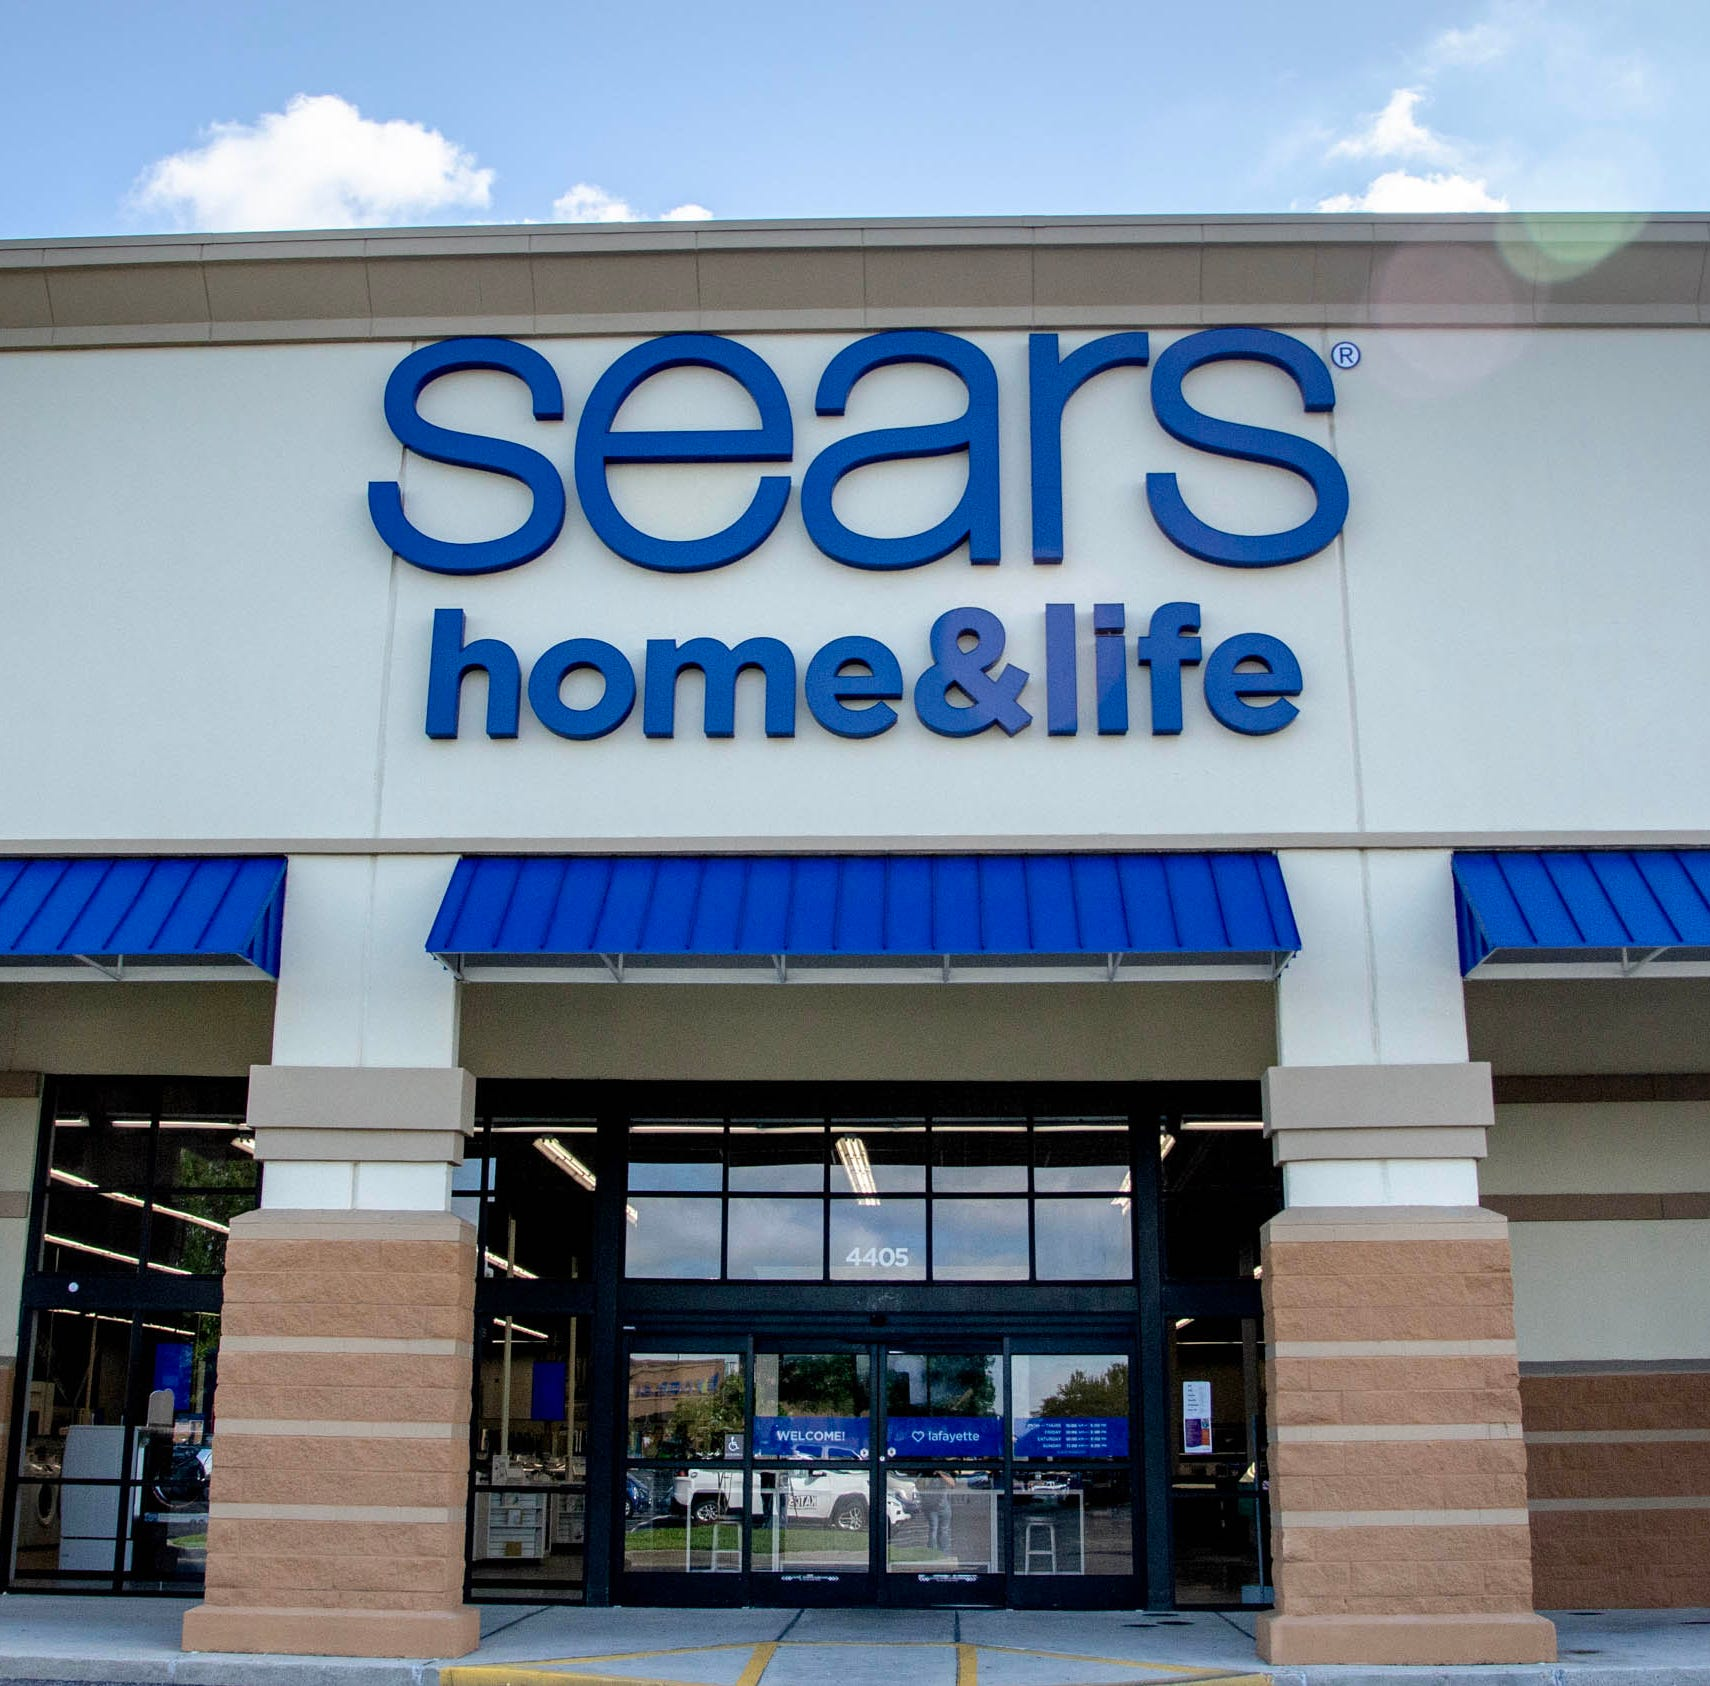 Lafayette is one of three cities in the country to get new Sears Home & Life stores